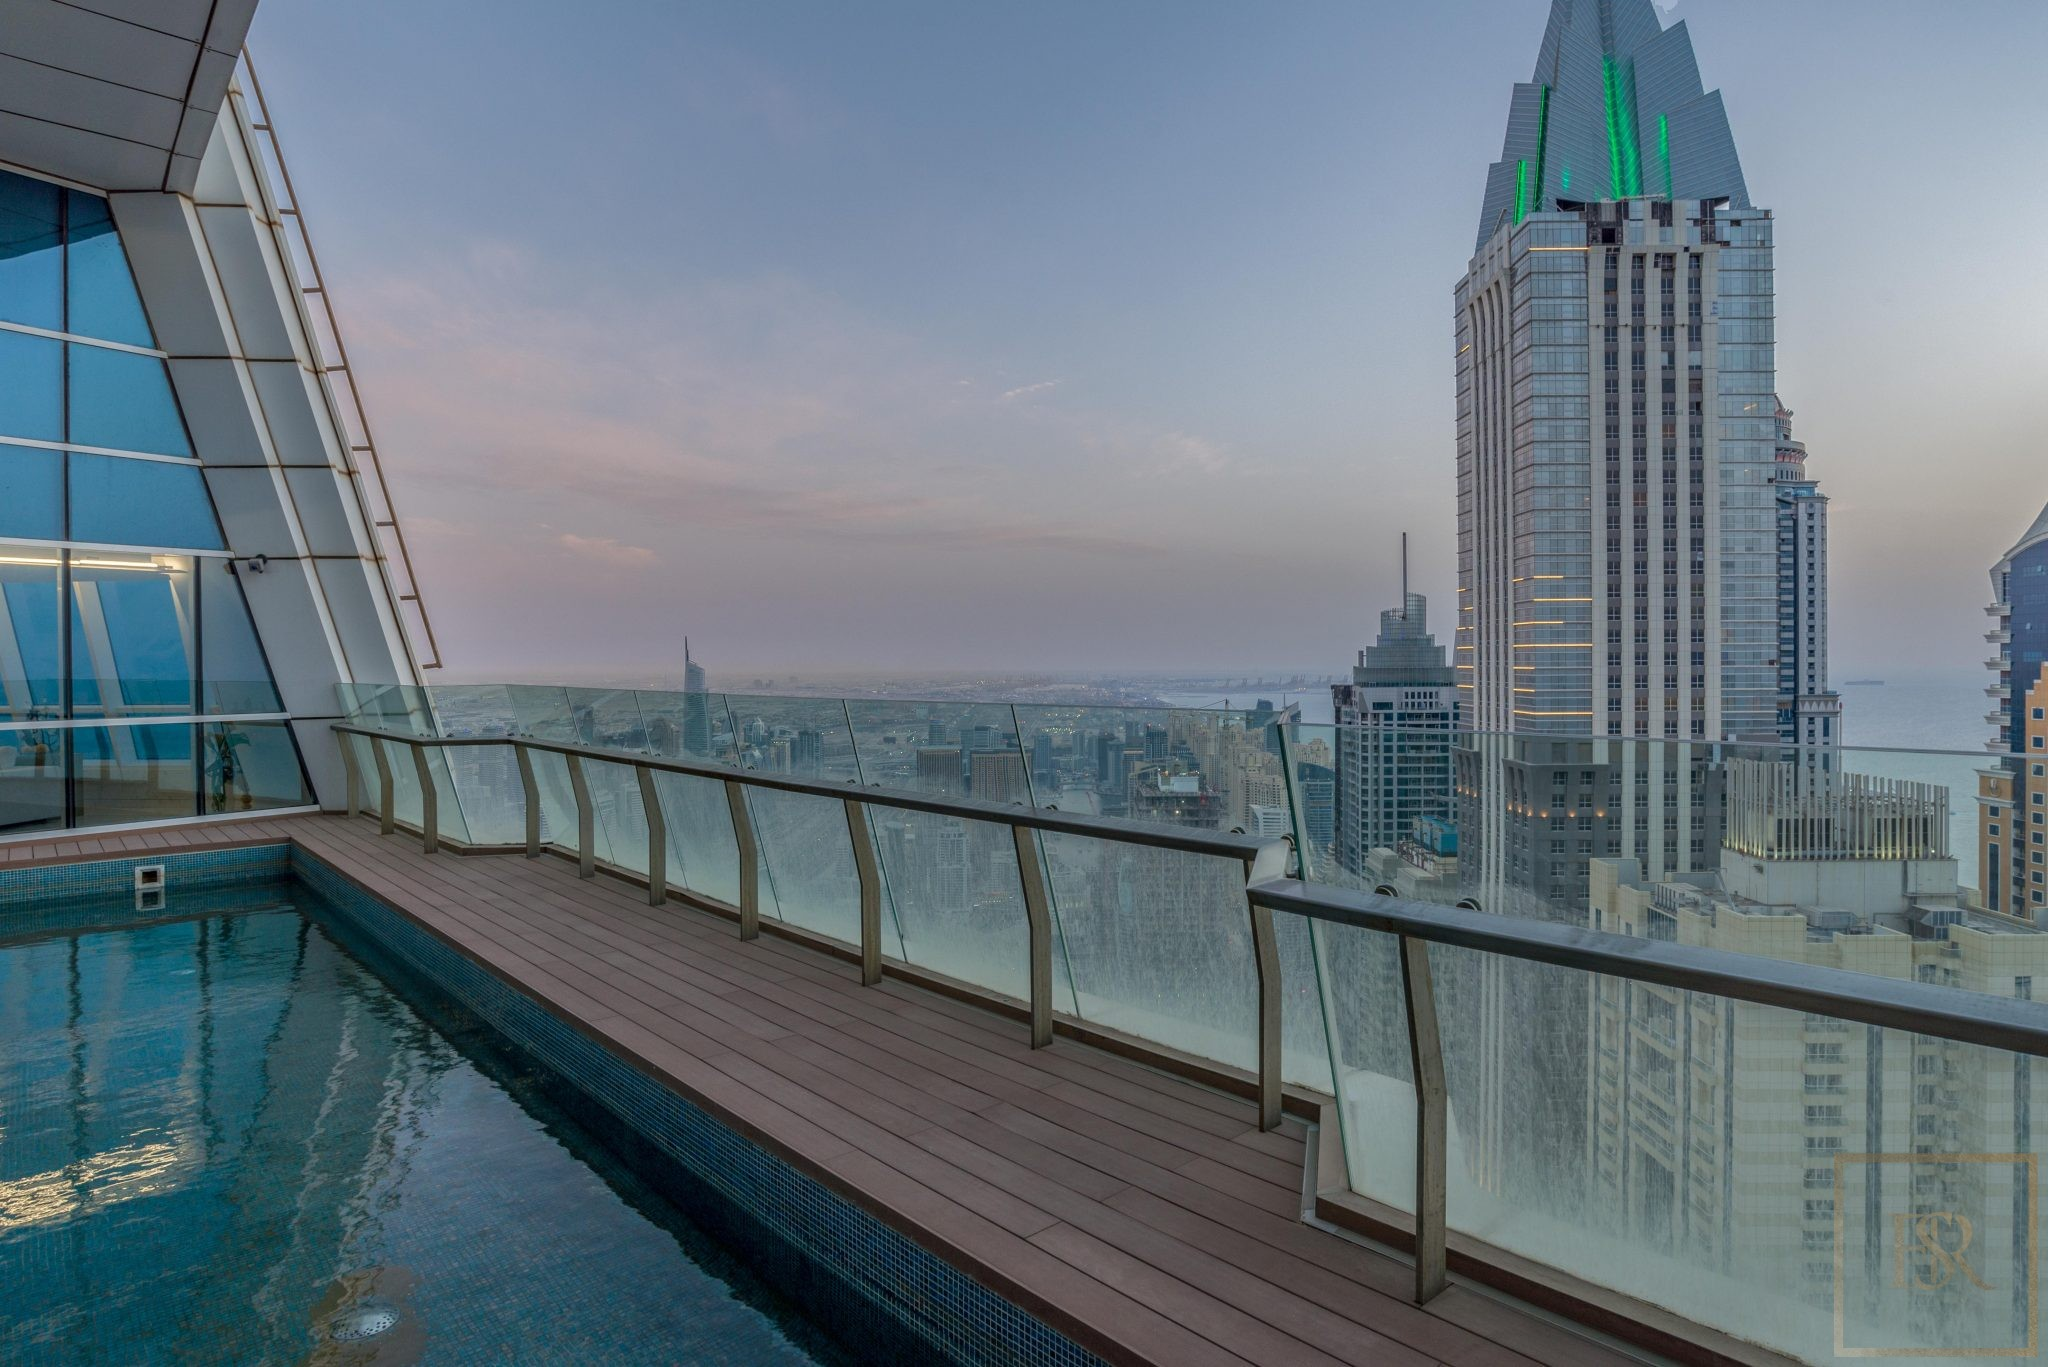 Luxury Penthouse Marina 23 Tower In Dubai For Sale For Super Rich